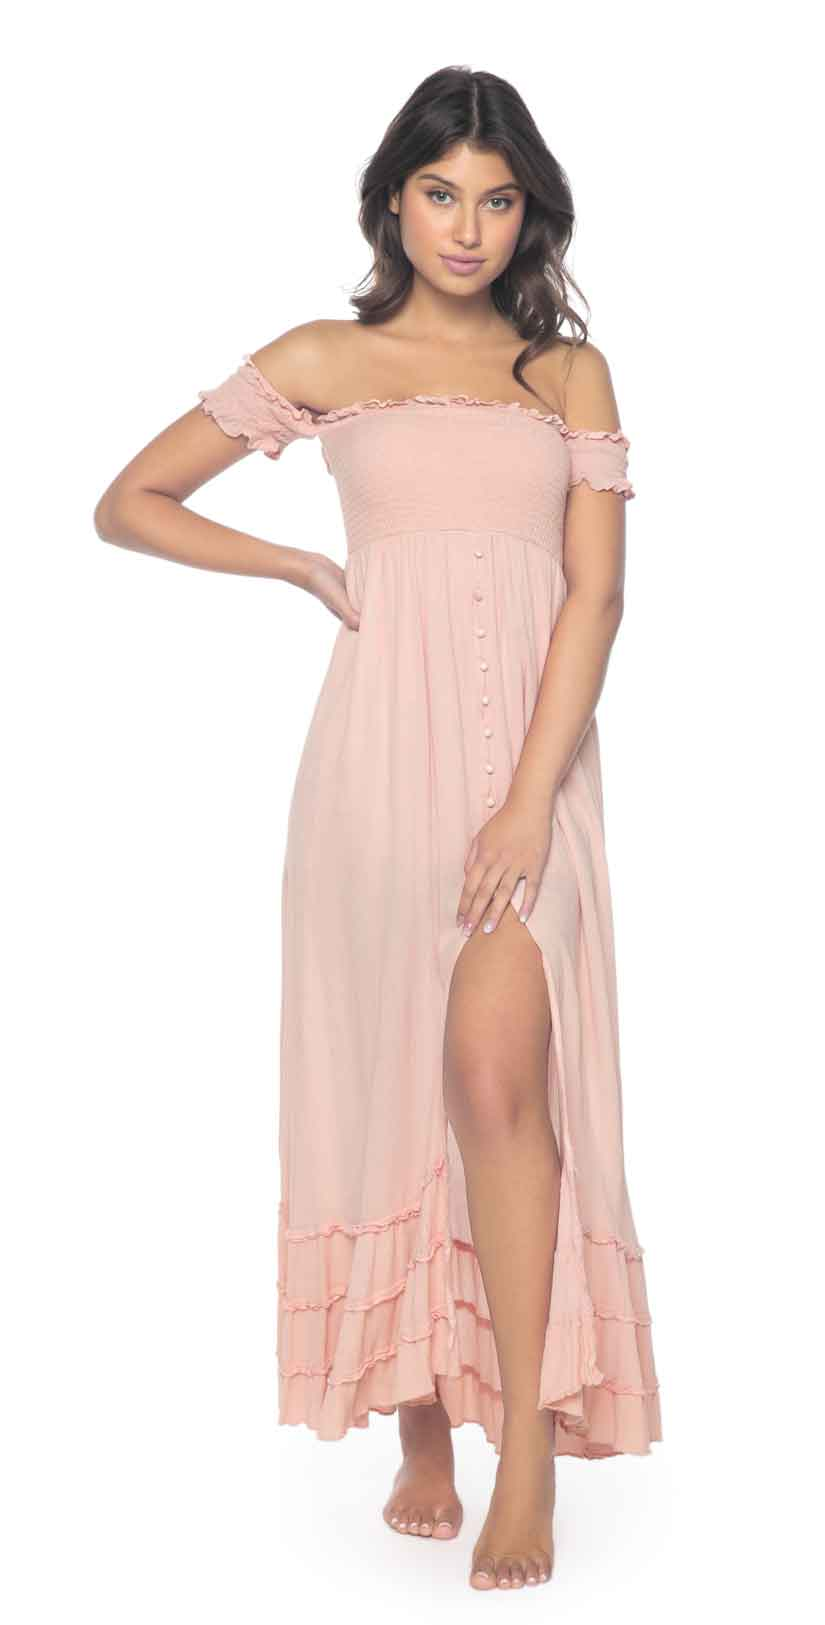 PilyQ Pink Sand Mishell Dress: